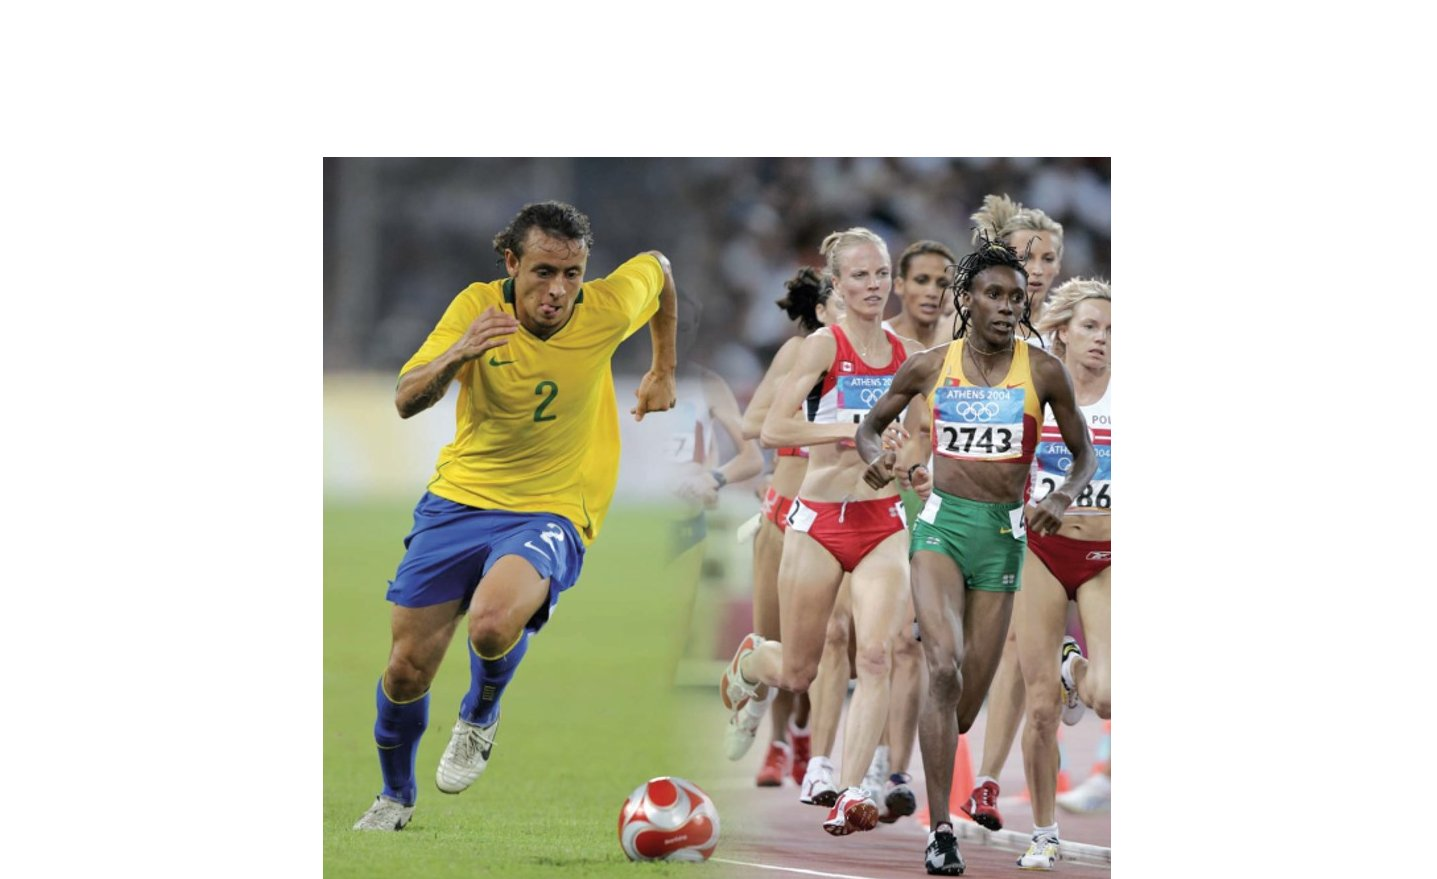 "<a style=""color: #fff;"" target=""_blank"" href=""http://ioc-preventionconference.org/?page_id=482"">IOC Course on Cardiovascular Evaluation of Olympic Athletes</a>"